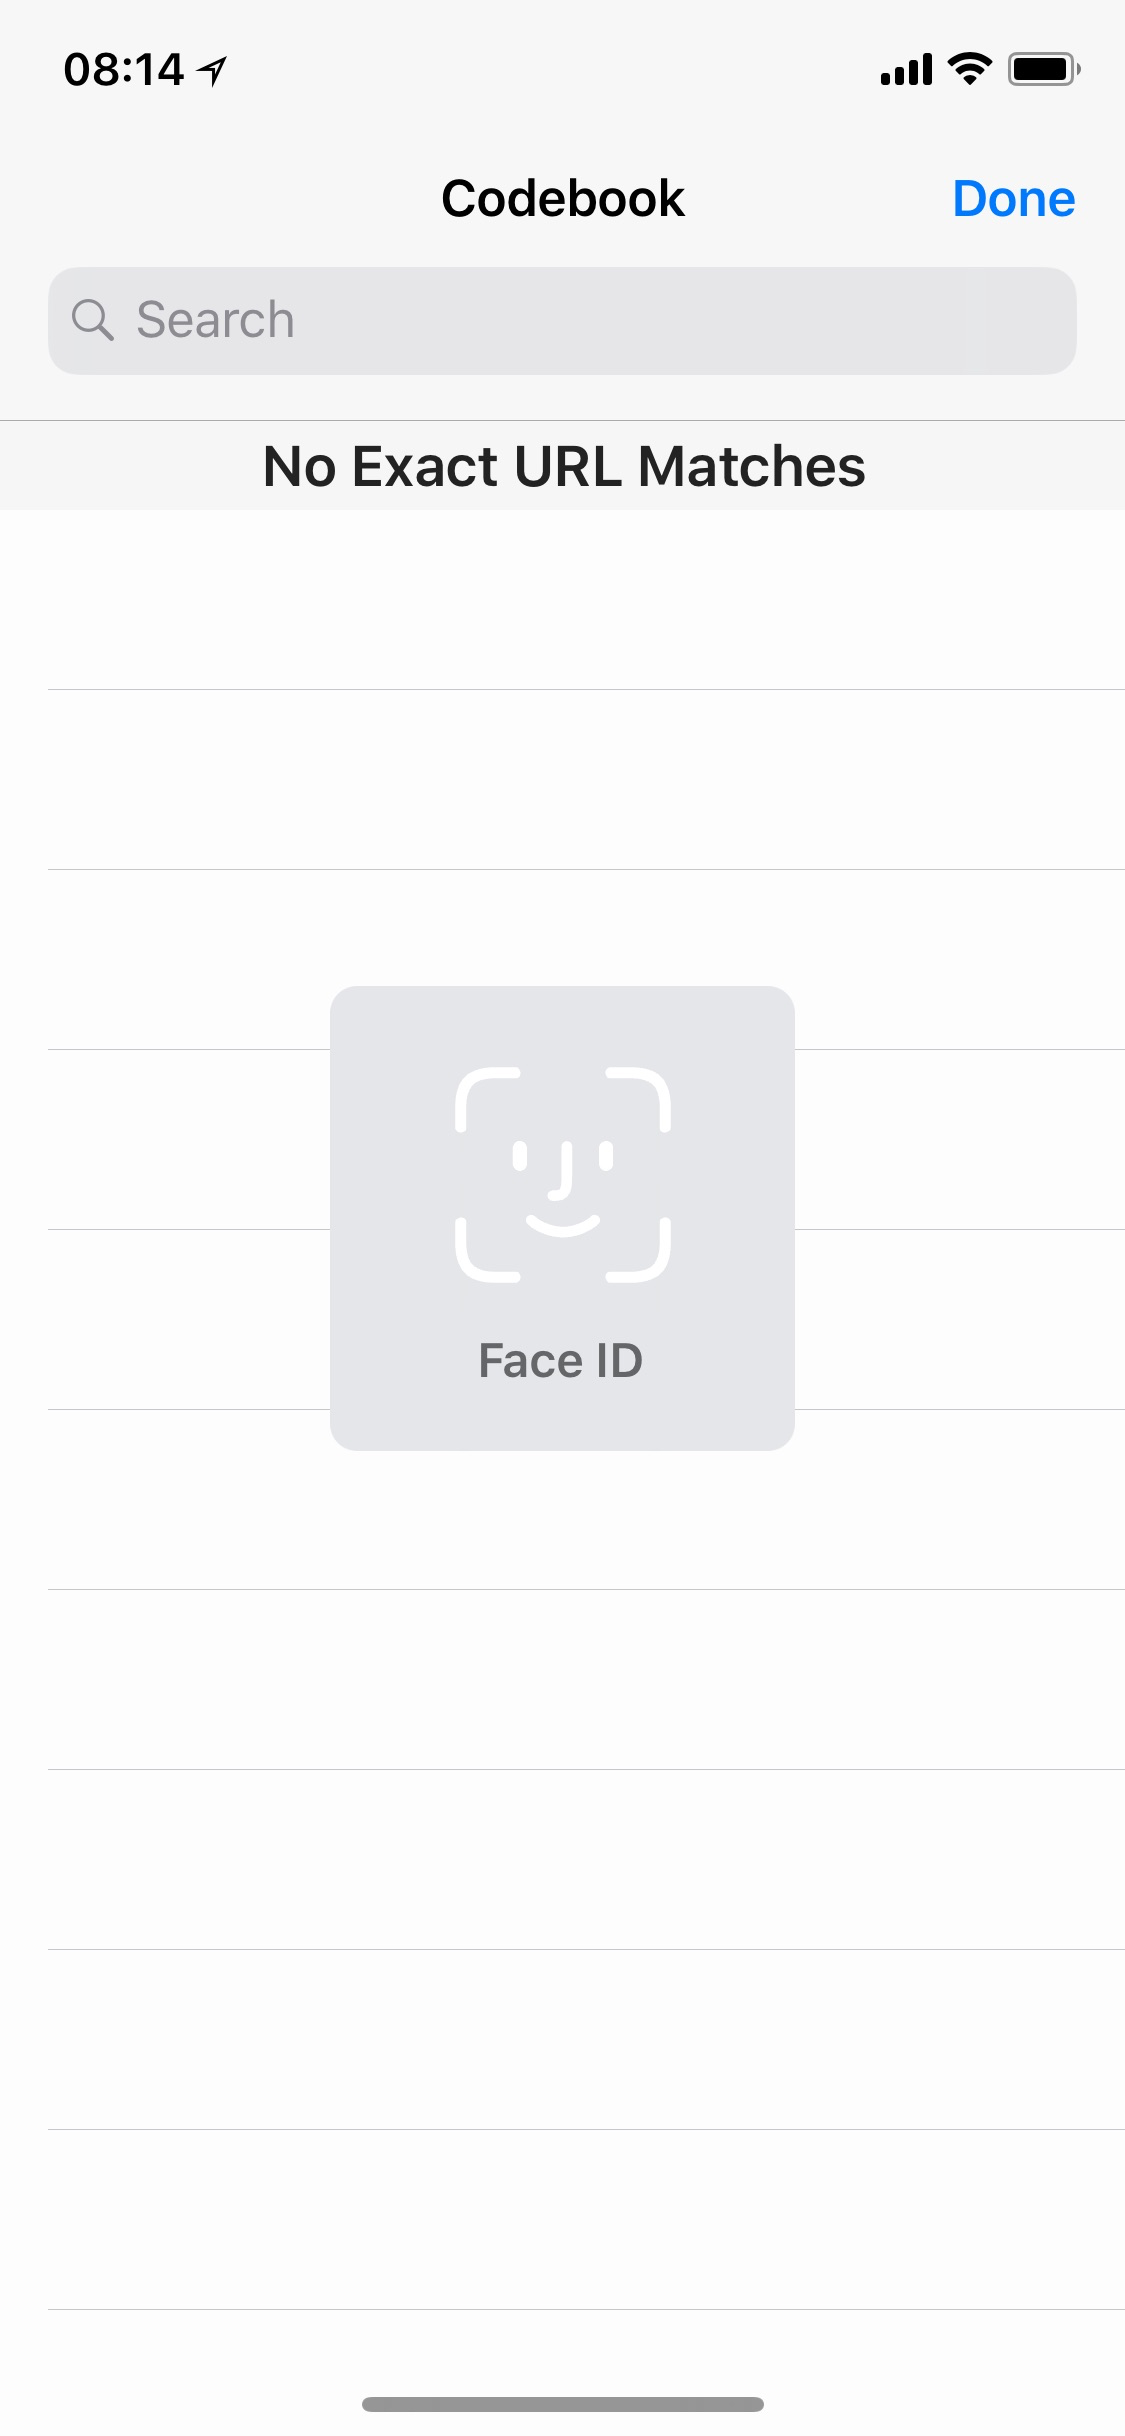 Face ID prompt